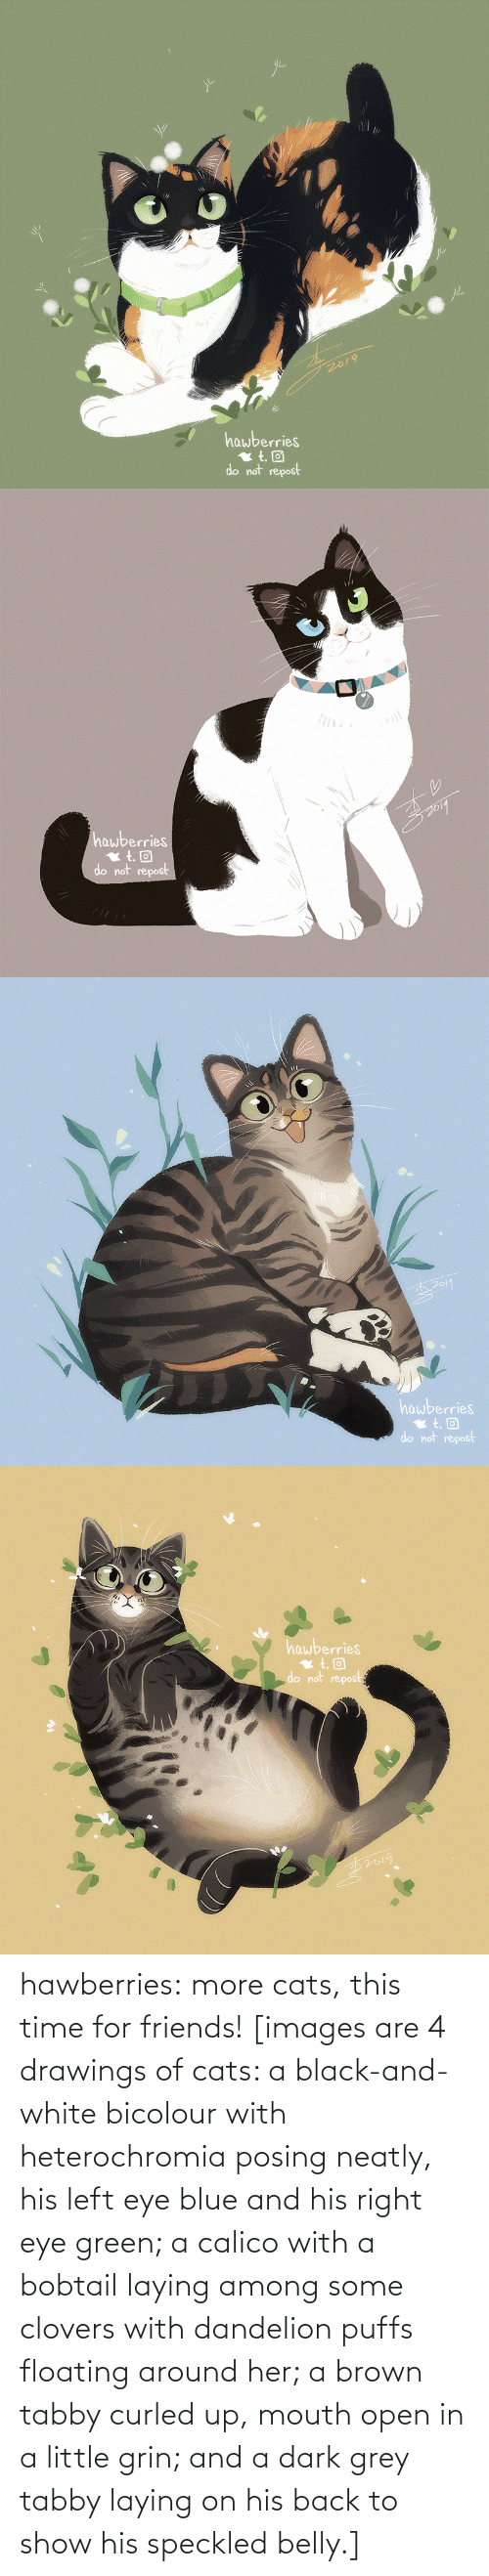 eye: 2019  hawberries  do not repost   hawberries  do not repost   hawberries  do not repost   hawberries  do not repost hawberries: more cats, this time for friends! [images are 4 drawings of cats: a black-and-white bicolour with heterochromia posing neatly, his left eye blue and his right eye green; a calico with a bobtail laying among some clovers with dandelion puffs floating around her; a brown tabby curled up, mouth open in a little grin; and a dark grey tabby laying on his back to show his speckled belly.]